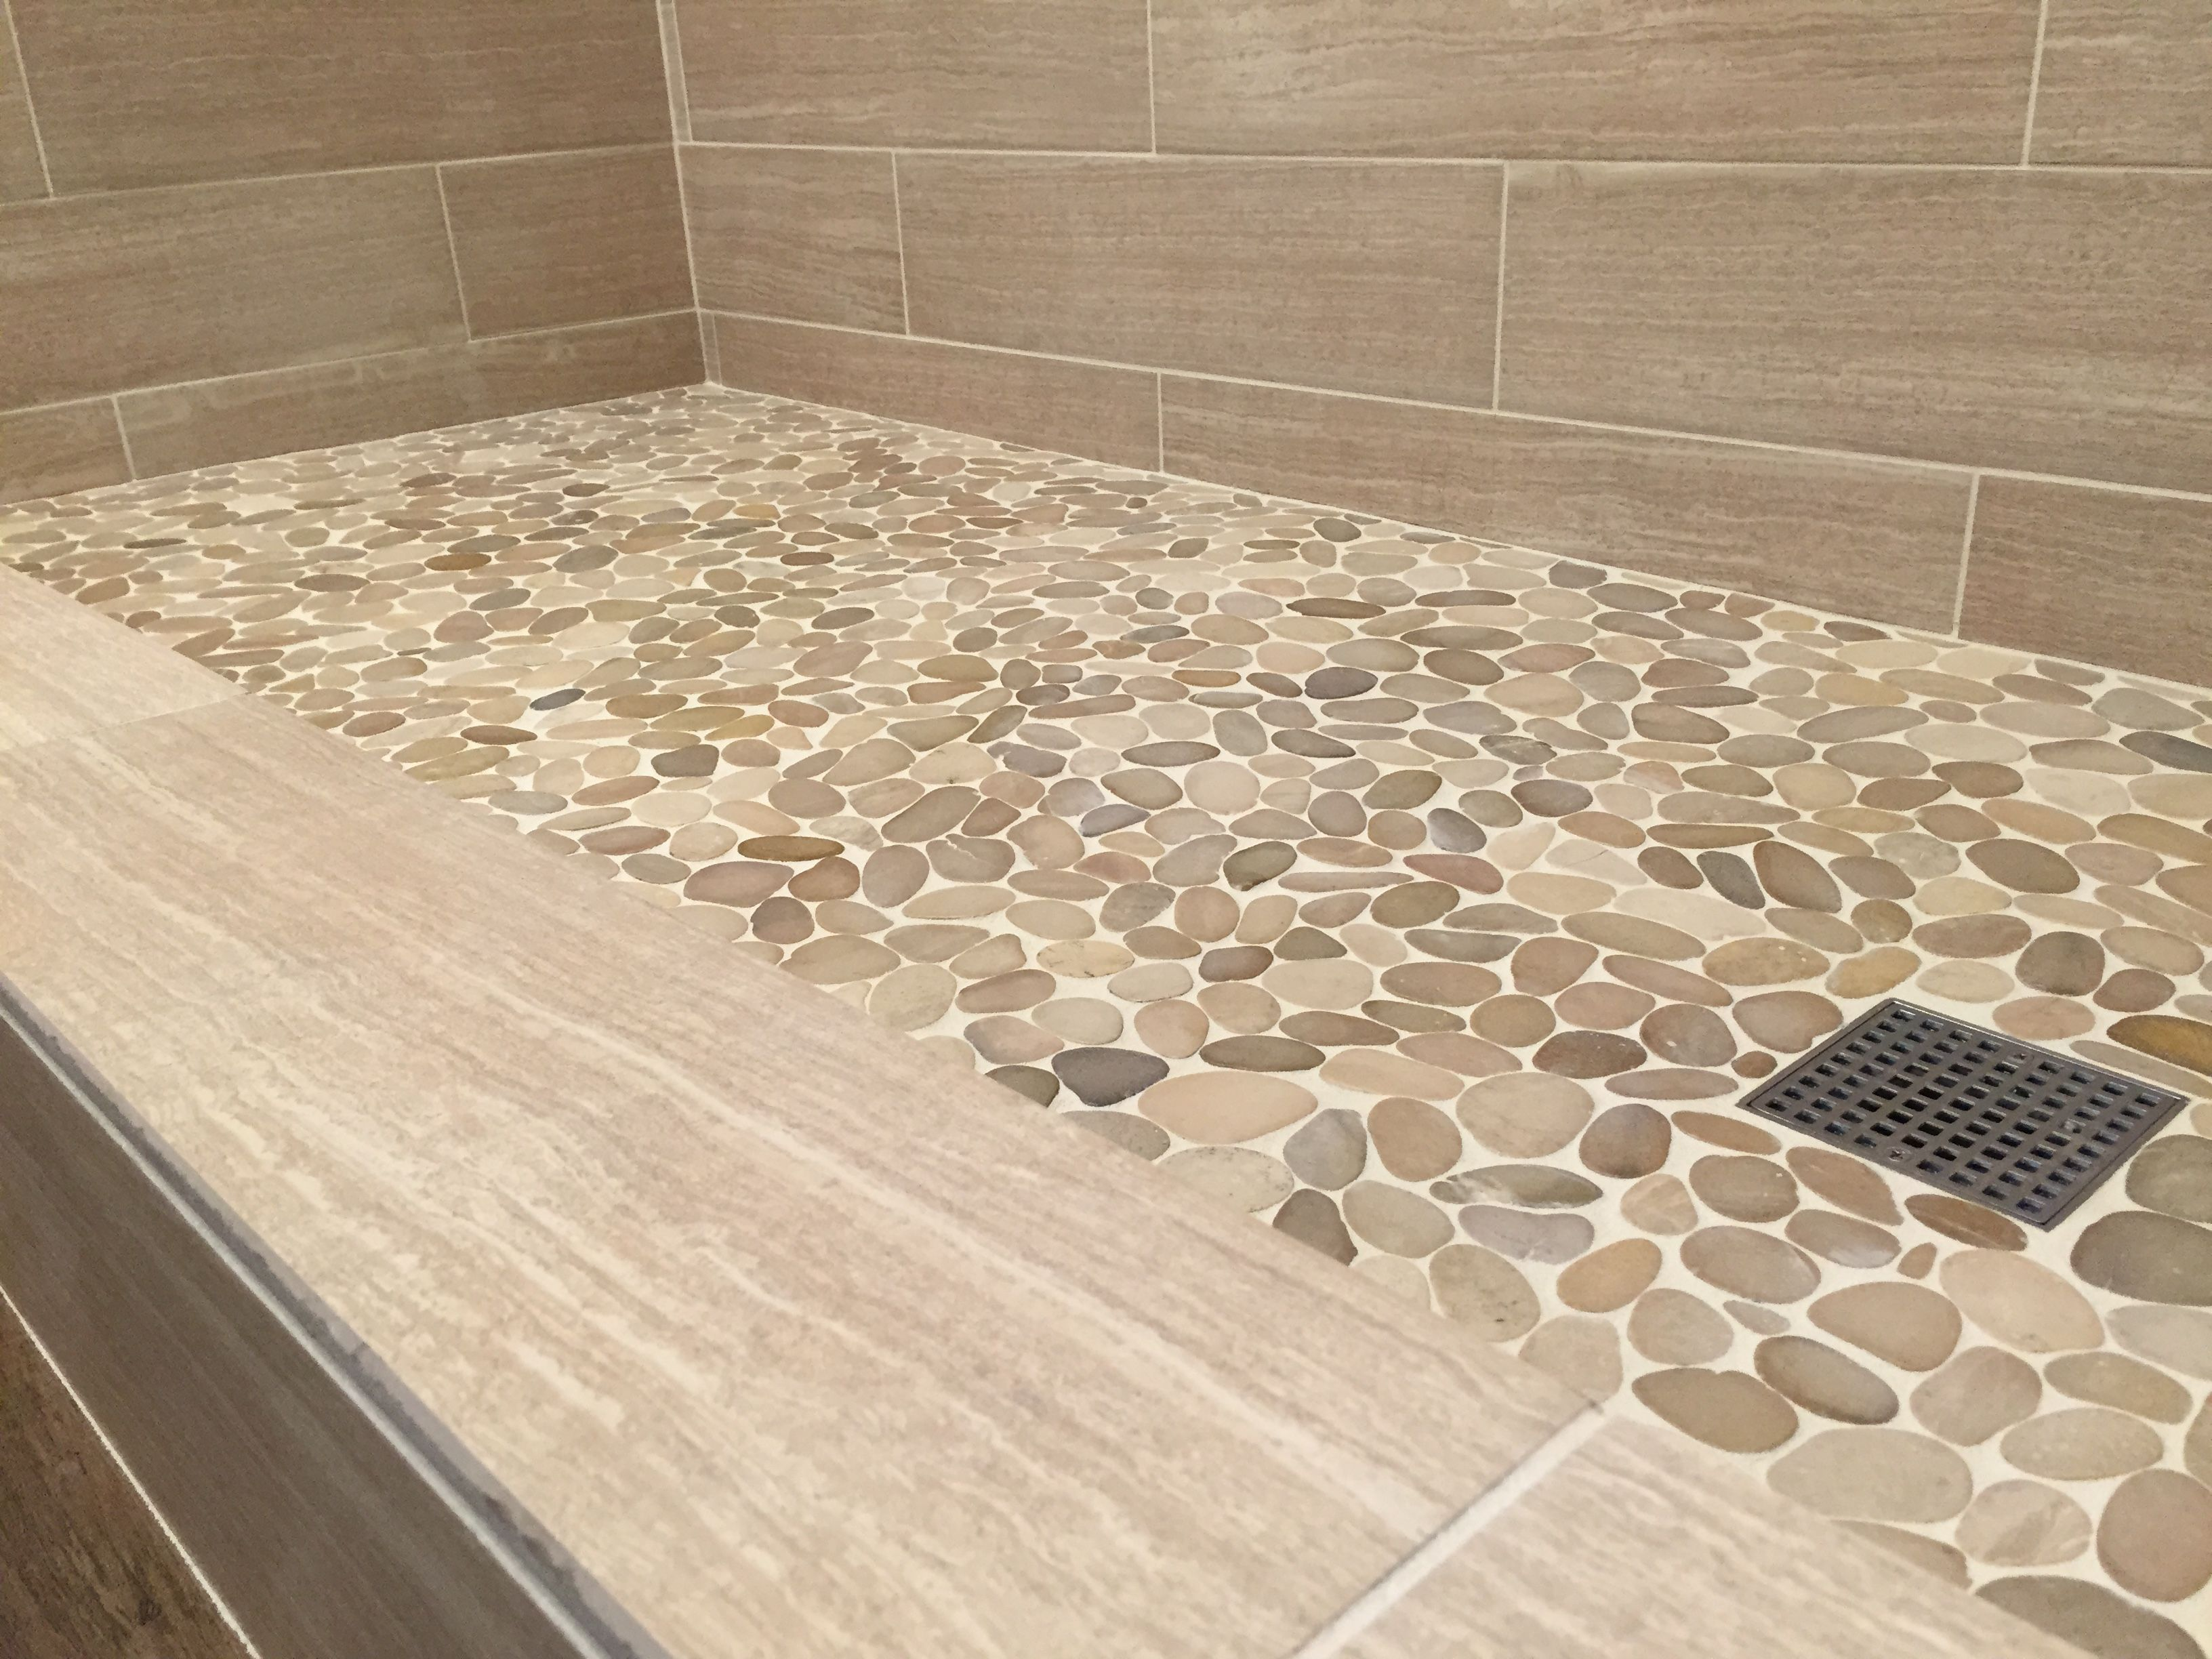 Pitch Tile Shower Floor Google Search With Images Shower